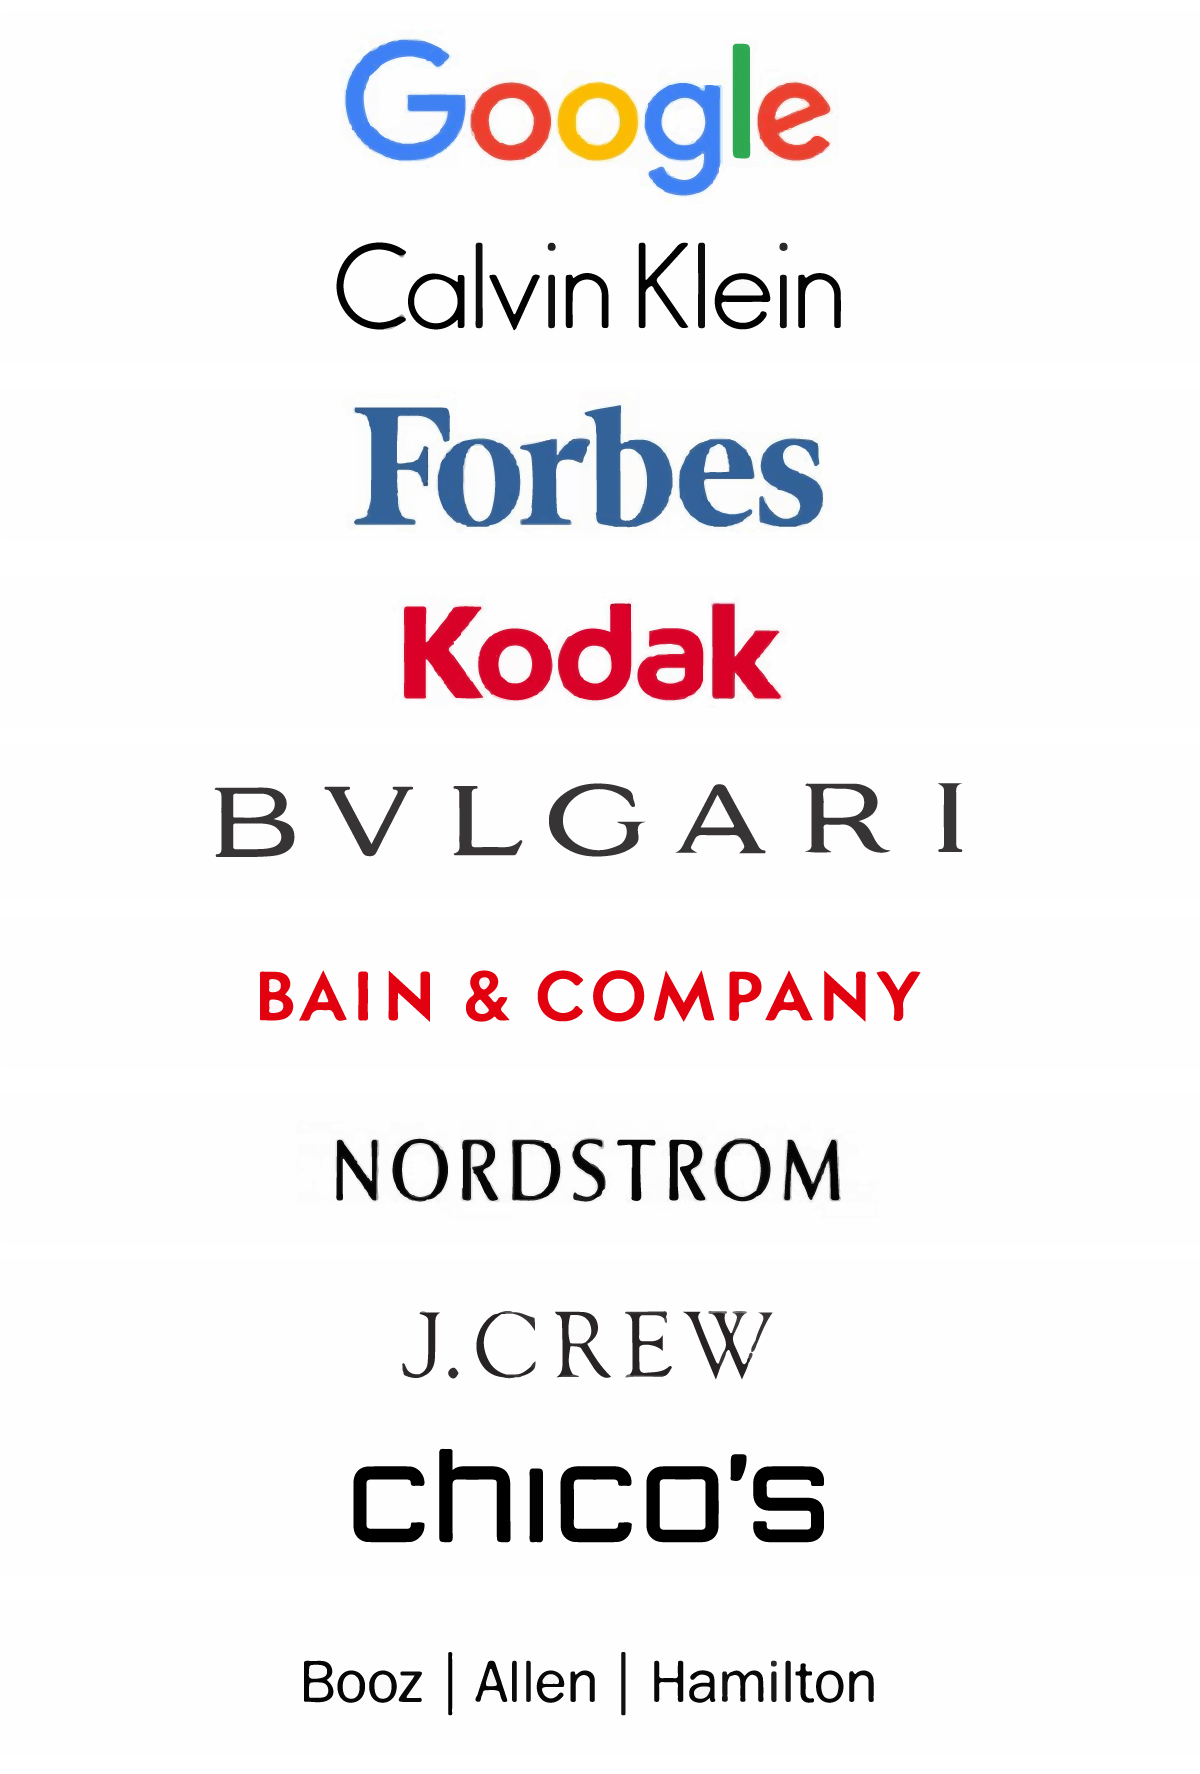 10 examples of world renowned companies with text only logos